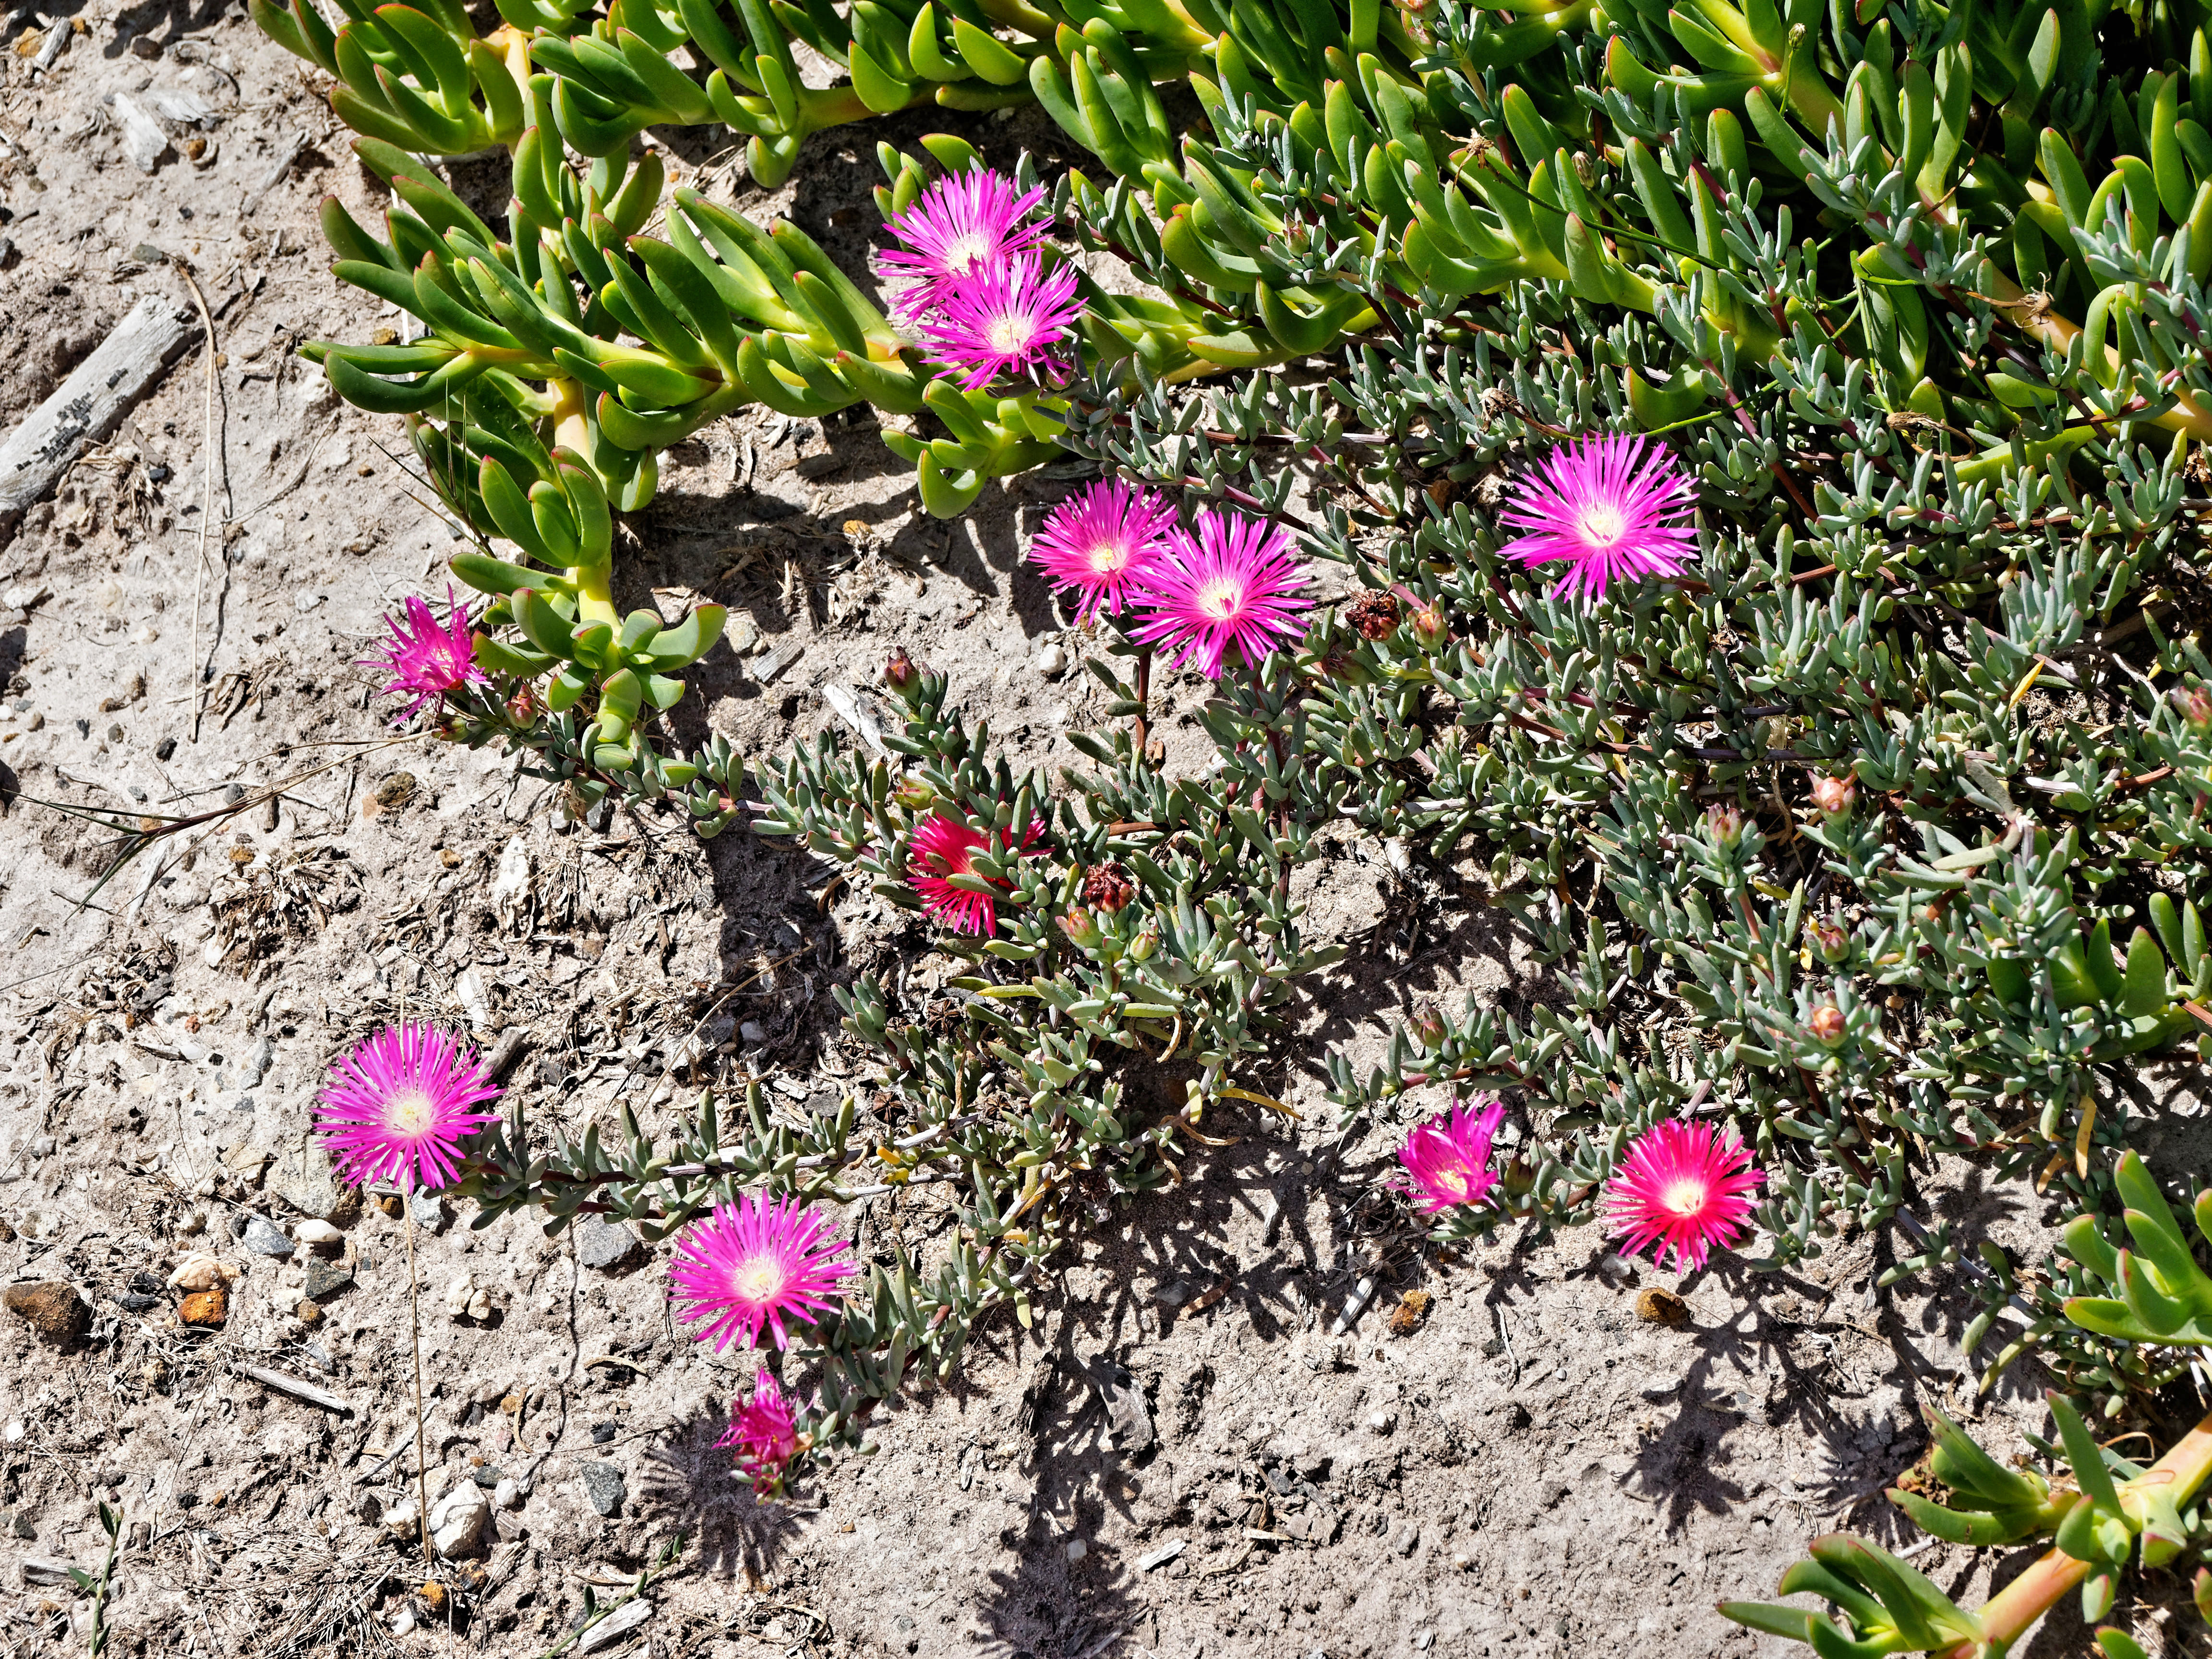 Carpobrotus.jpeg